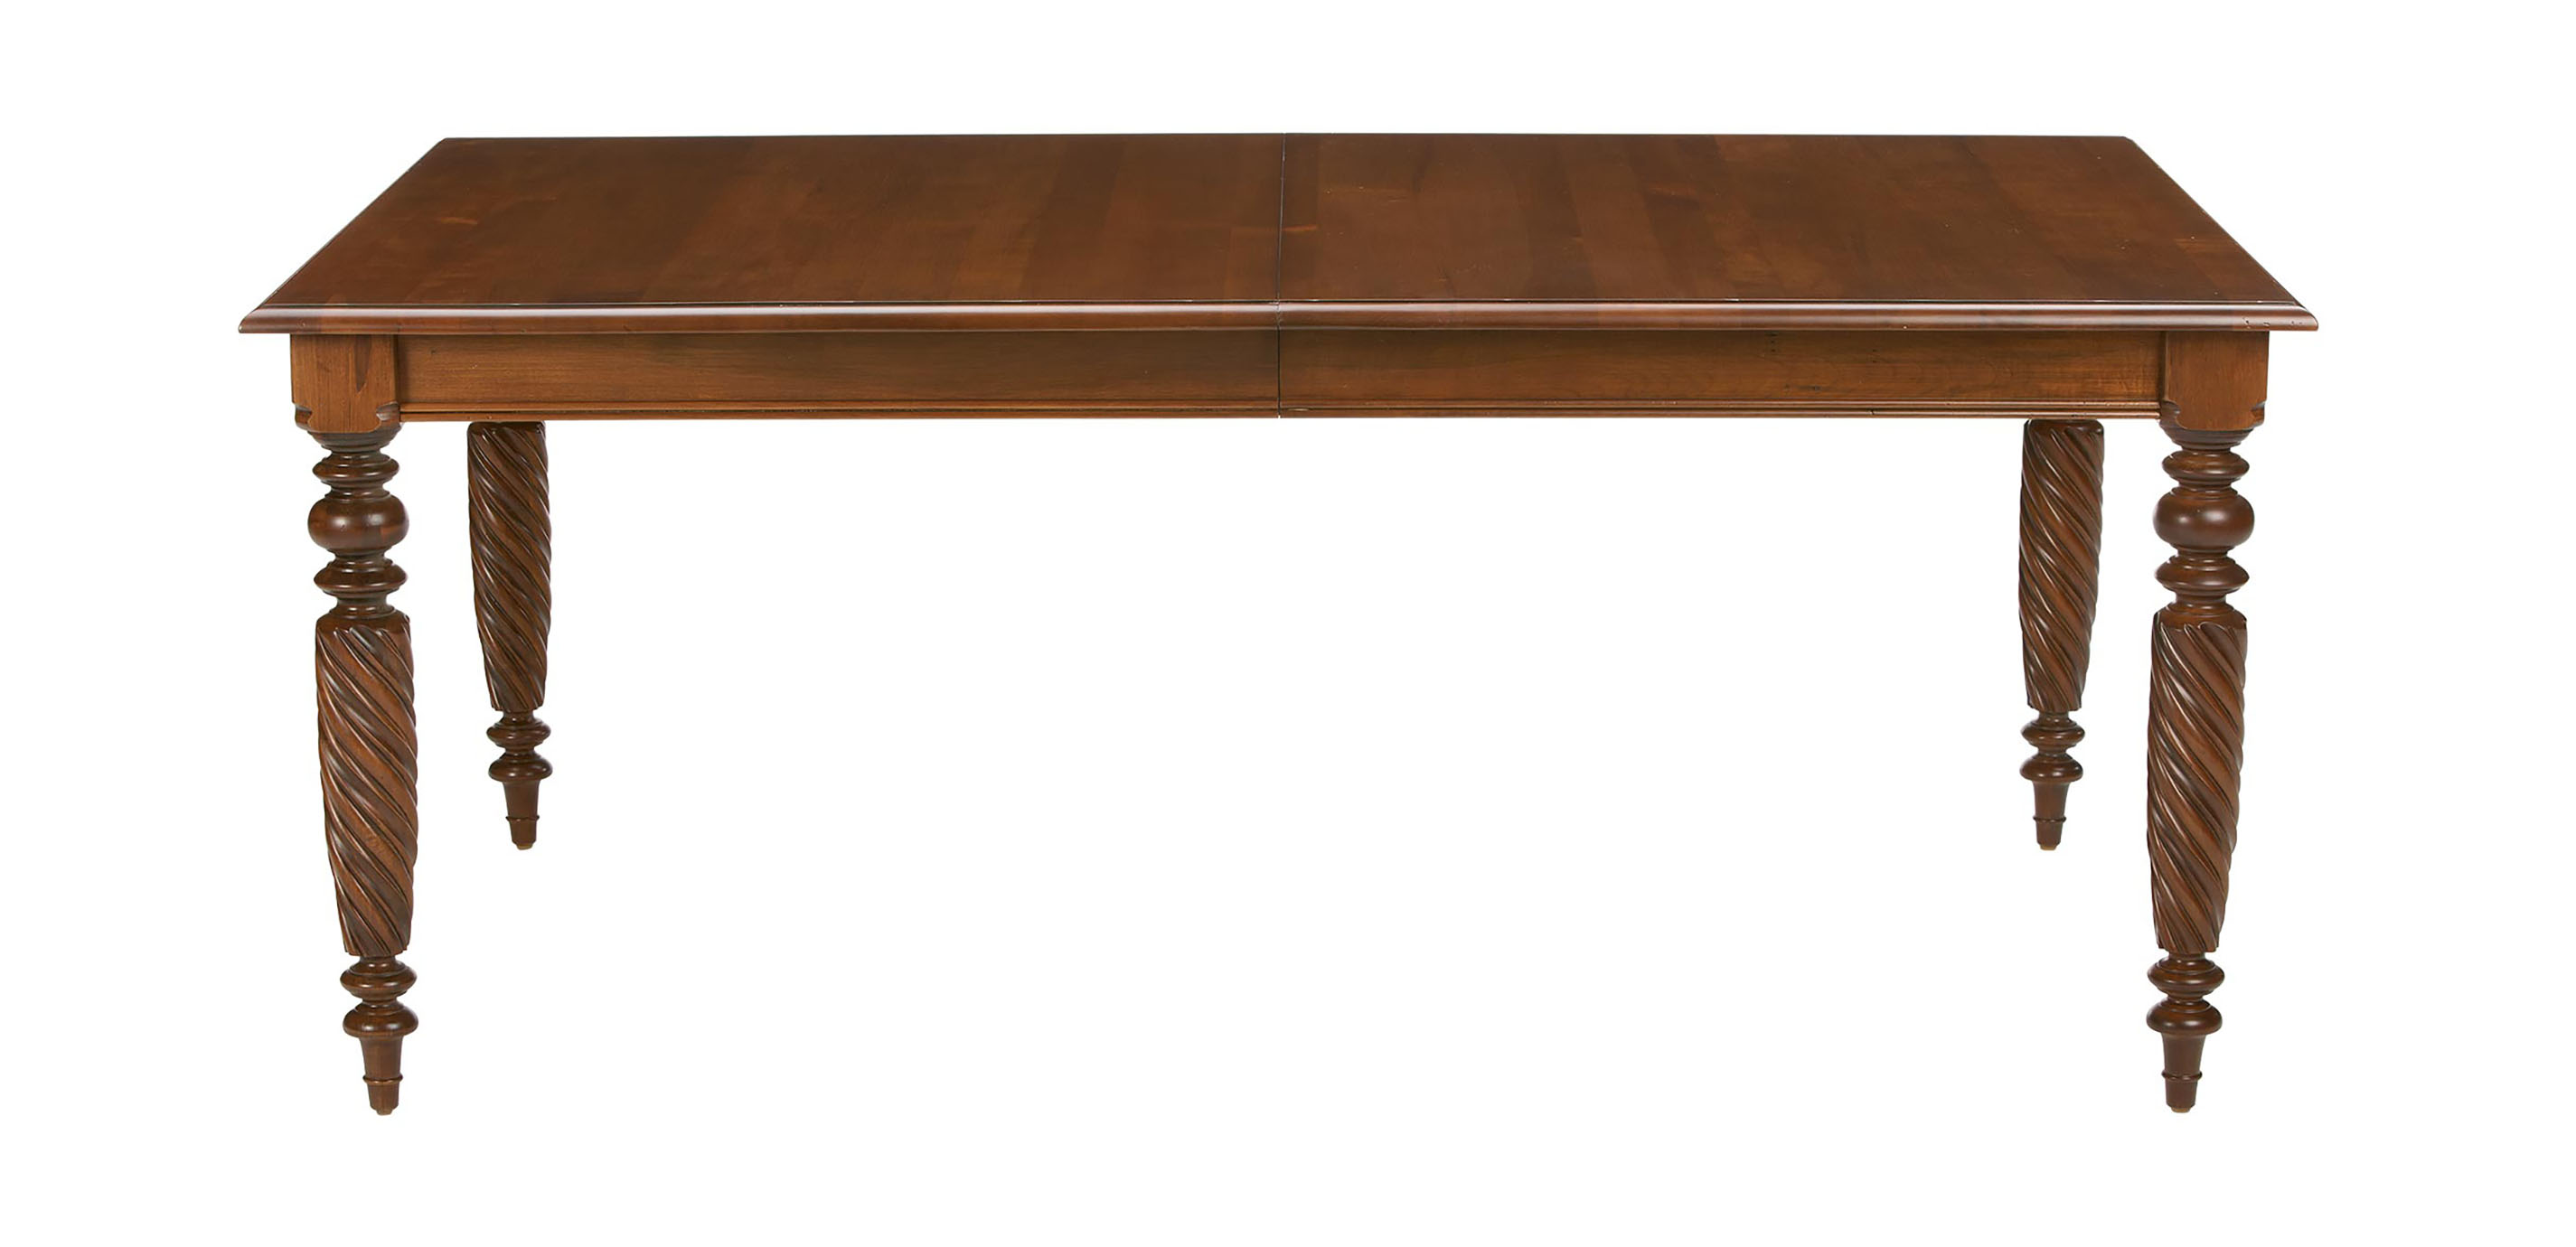 Livingston Large Dining Table Ethan Allen : 29 6204277FRONT from ethanallen.com size 2430 x 1740 jpeg 171kB